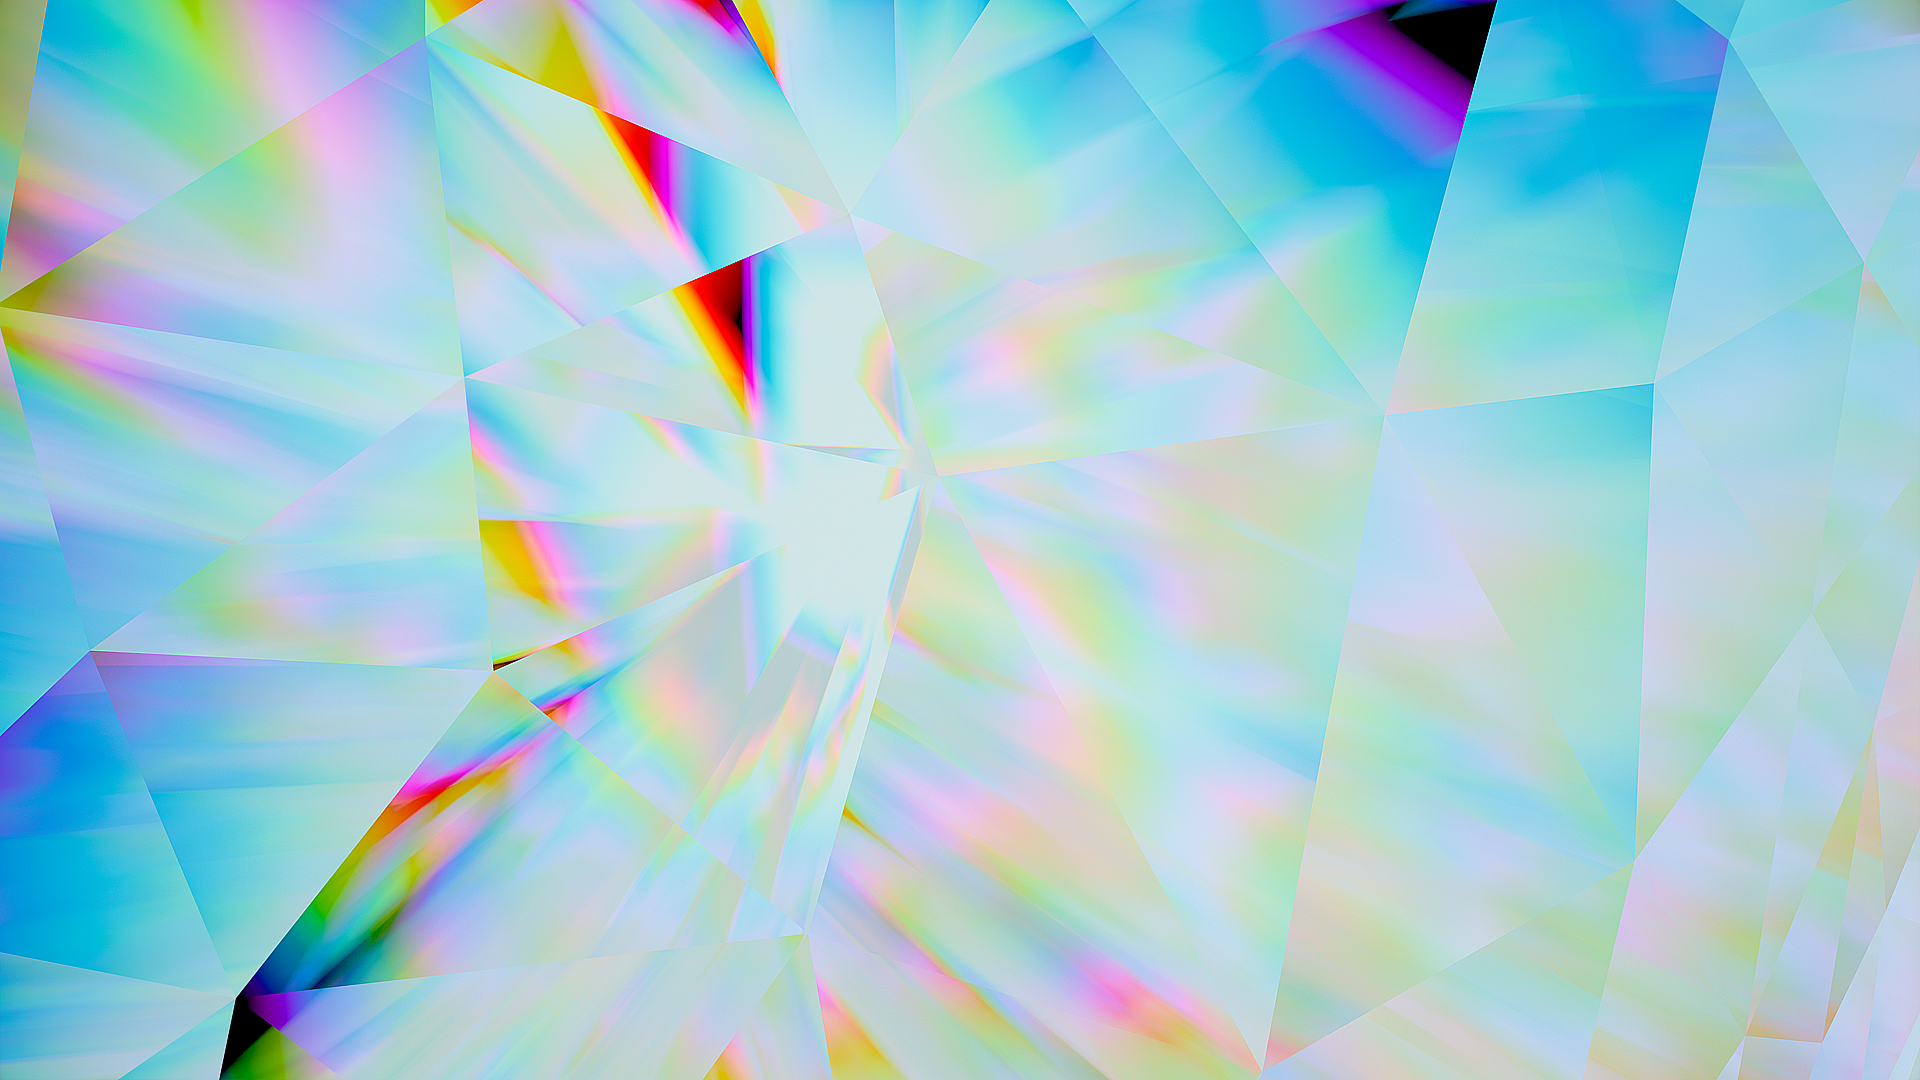 General 1920x1080 abstract Refraction digital art shapes cyan